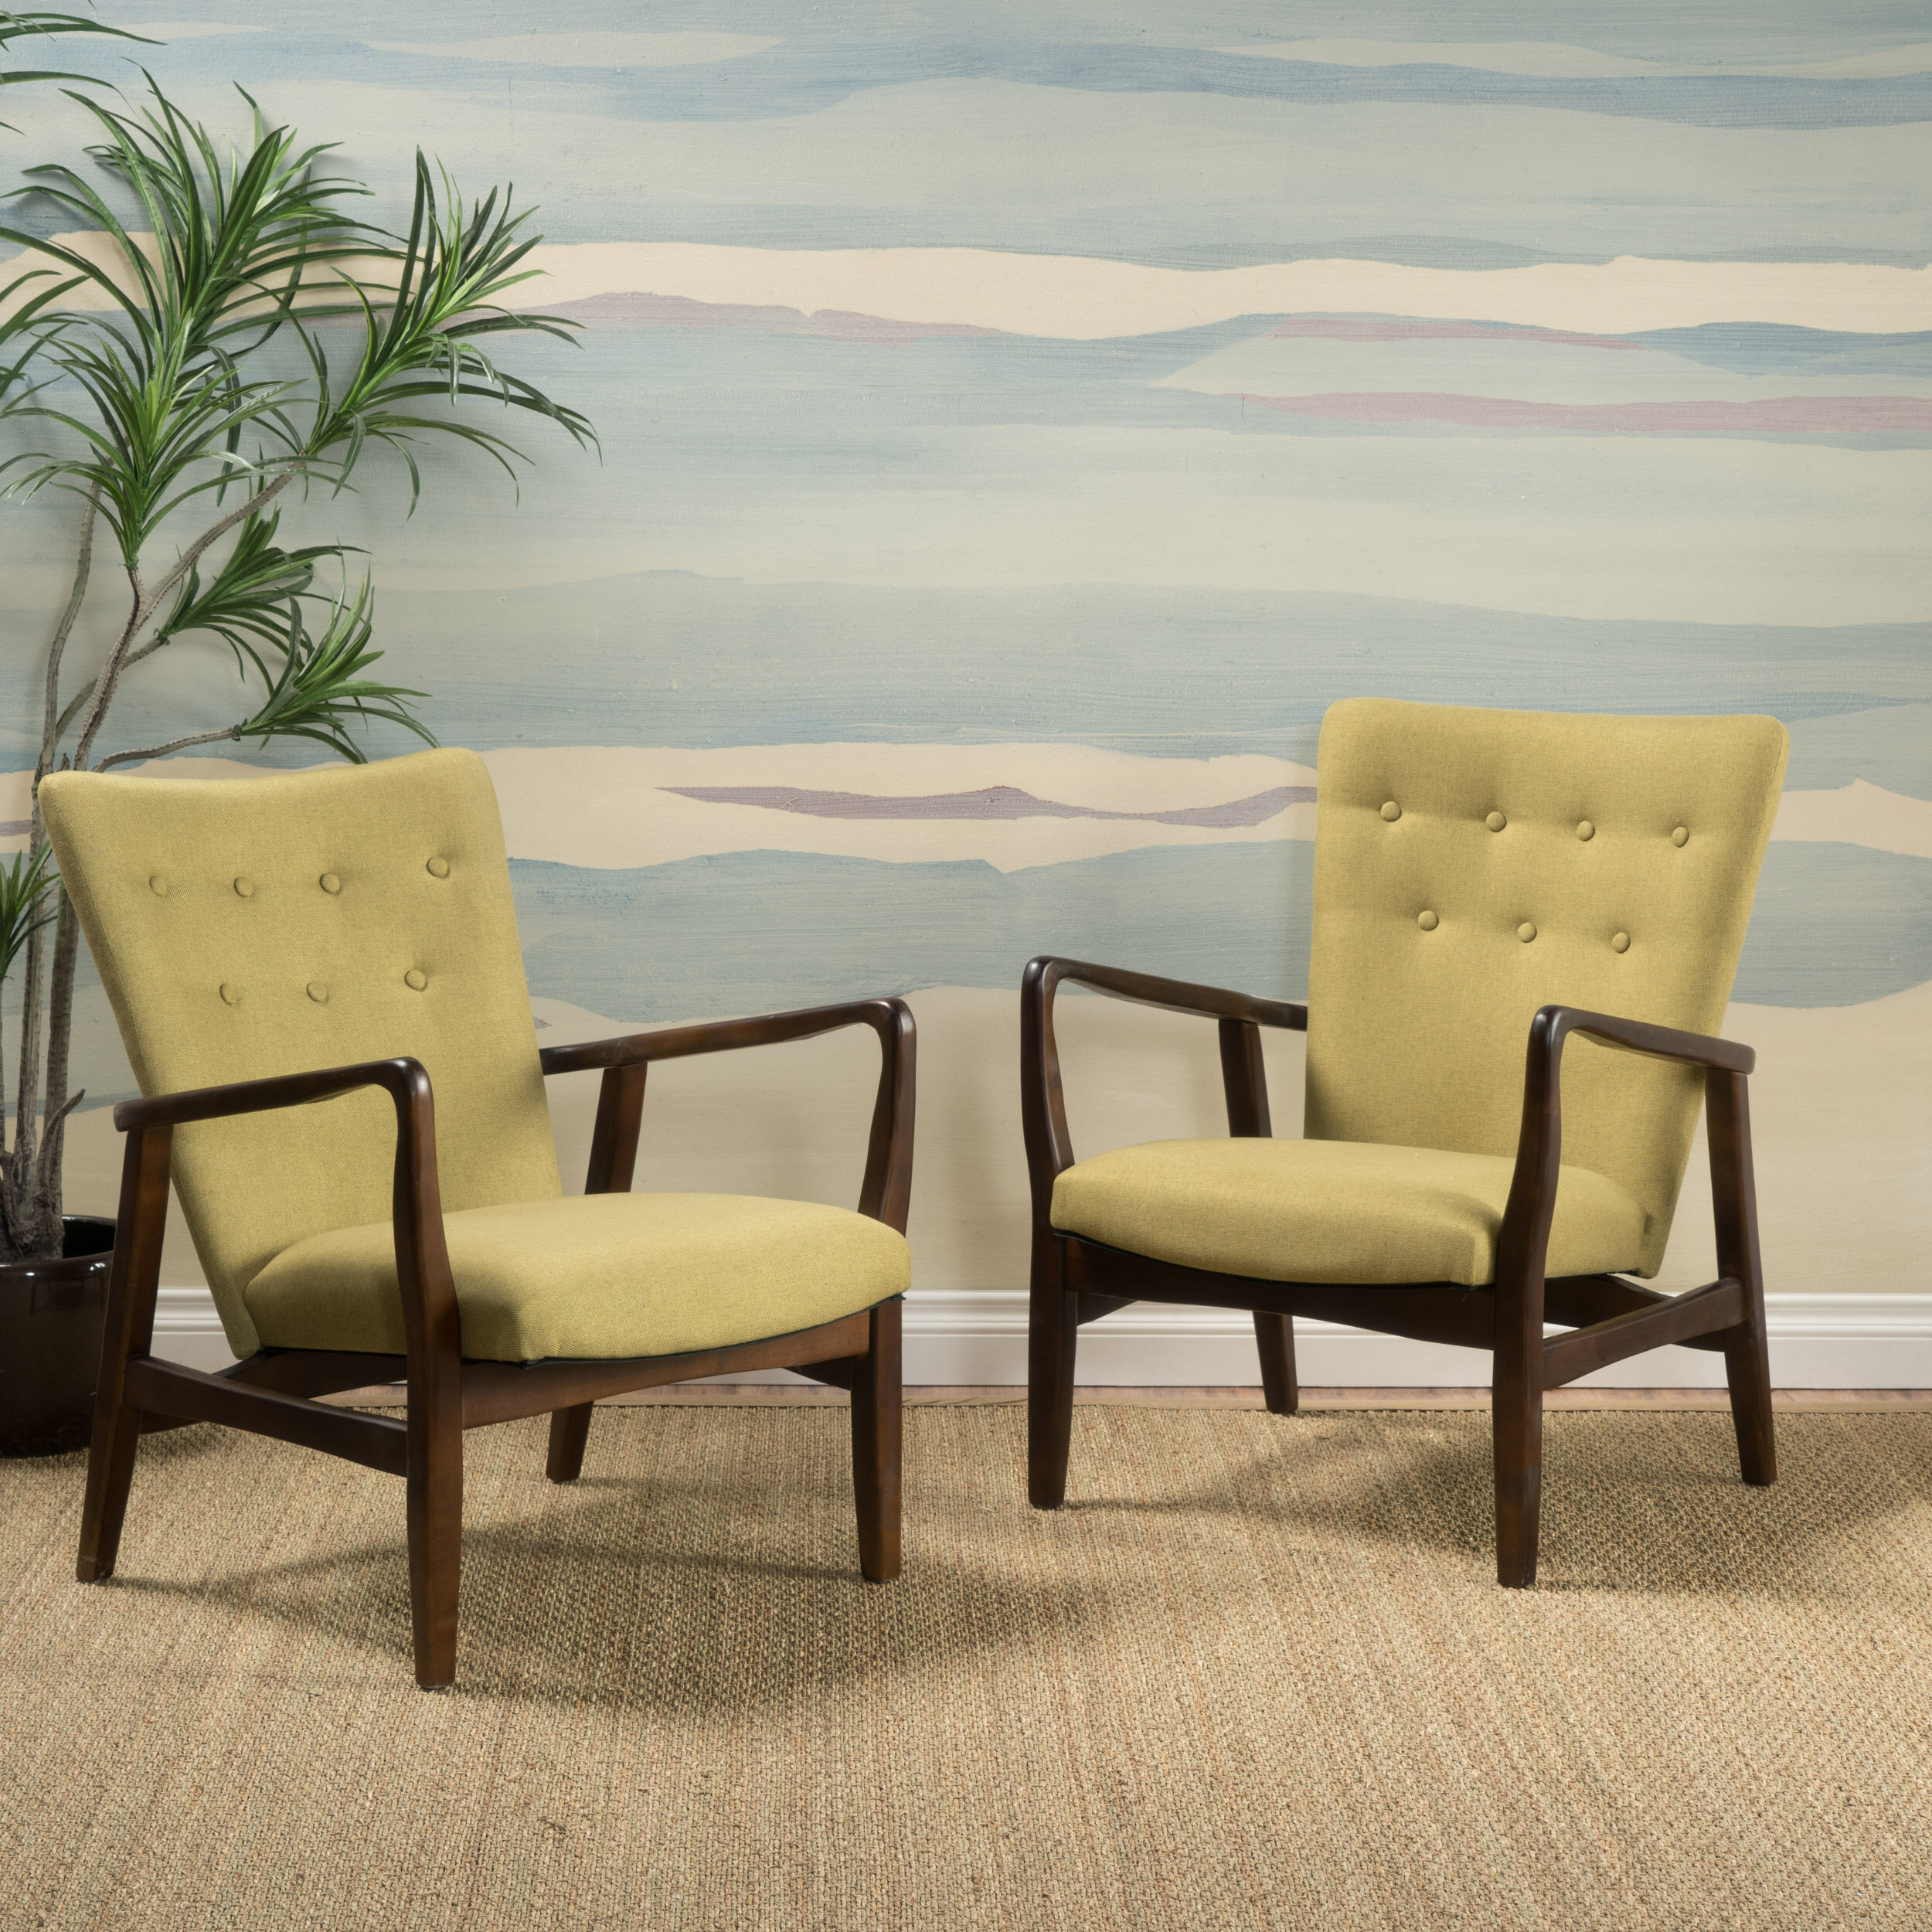 Chair Set Accent Chairs You'll Love In  (View 13 of 20)